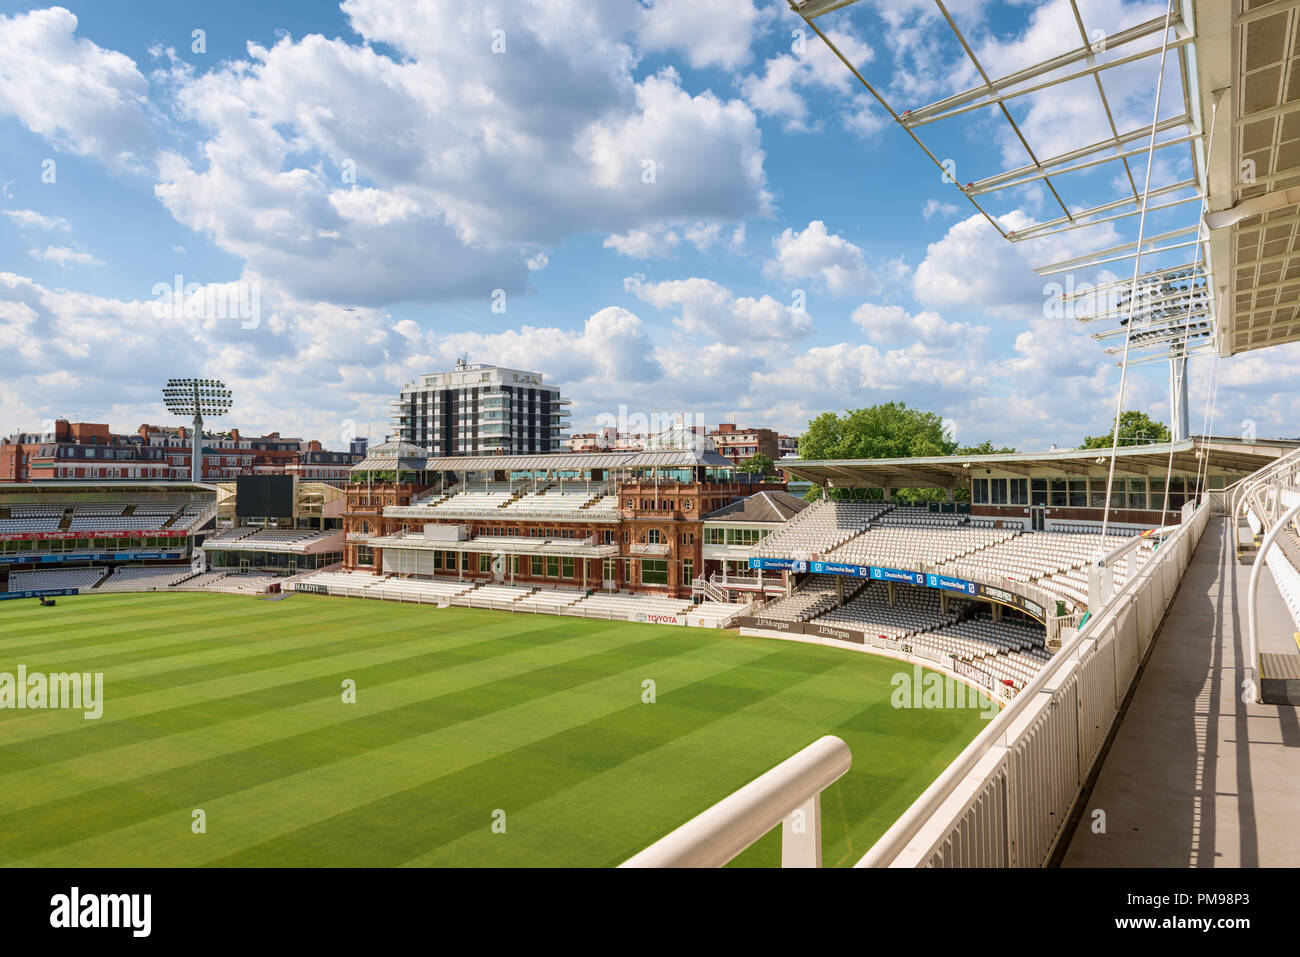 Victorian Pavillion, Lords Cricket Ground, London, UK - Stock Image